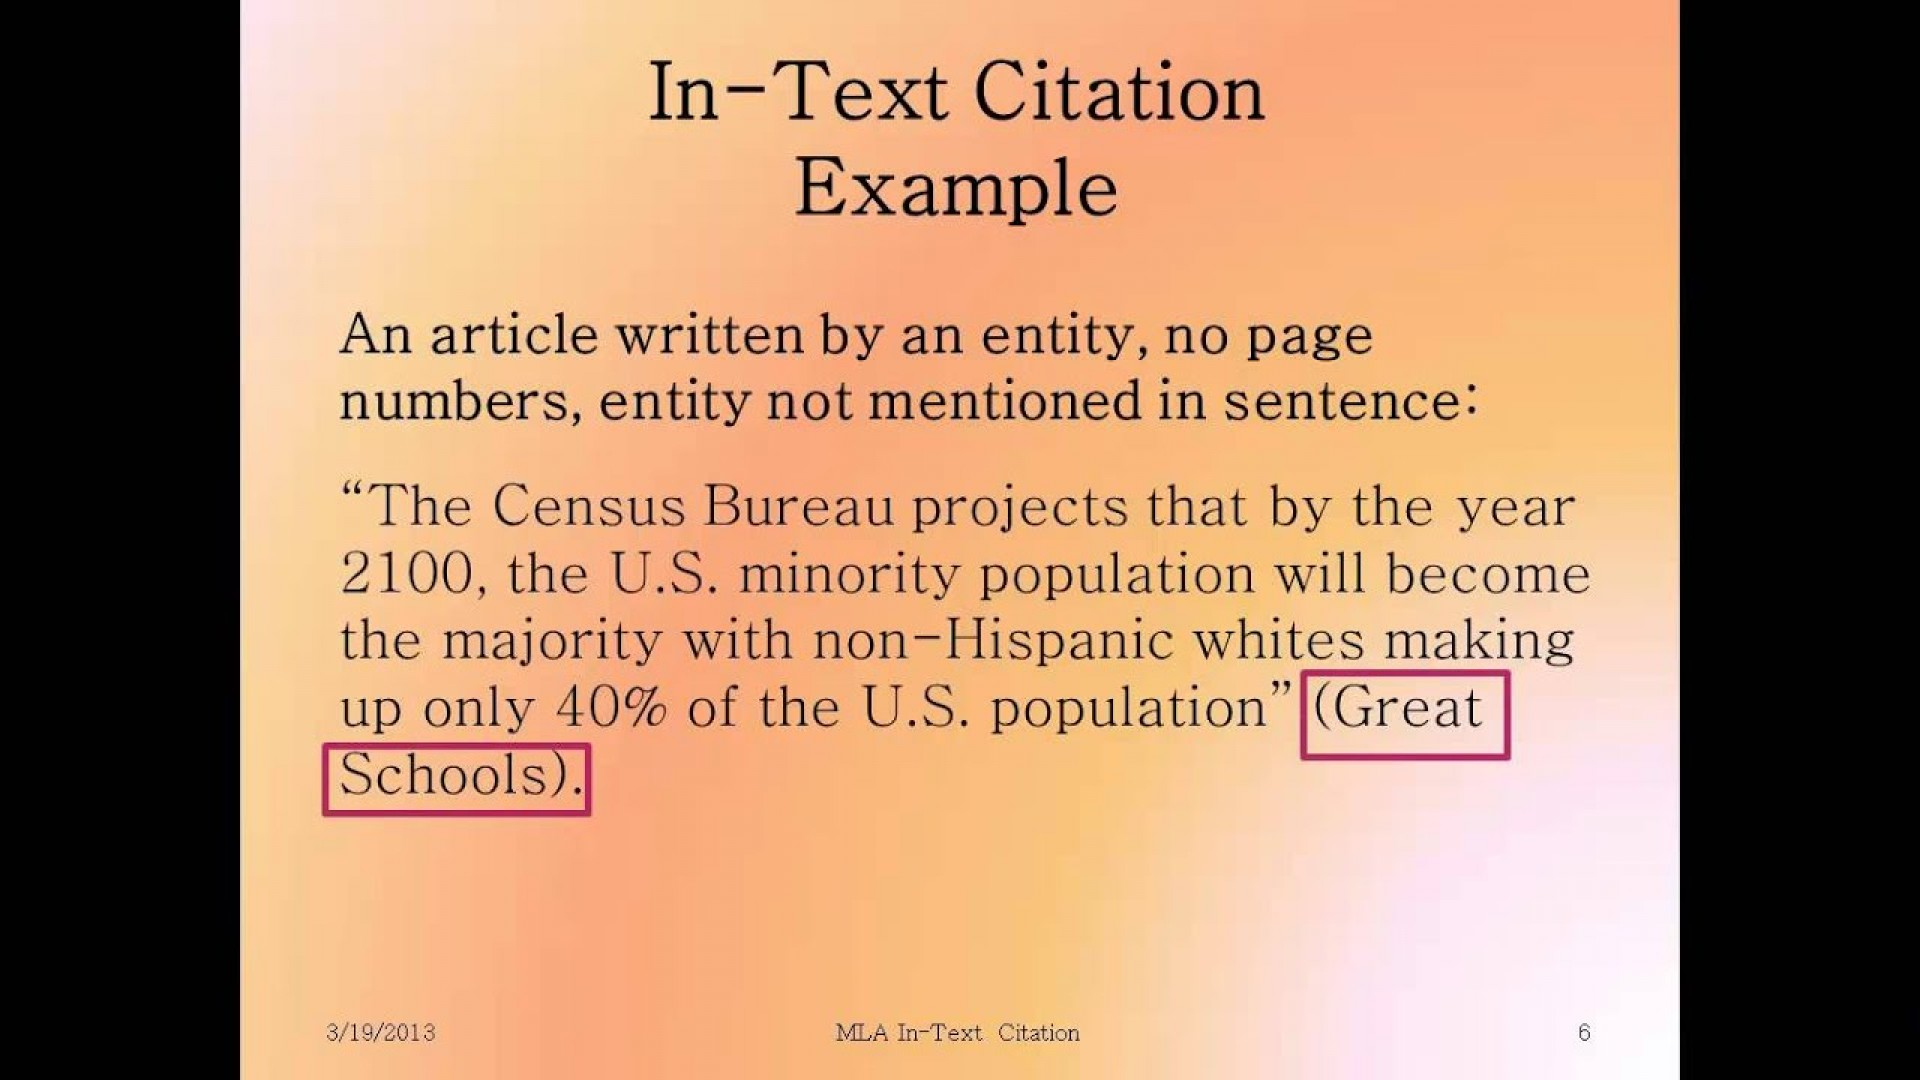 011 How To Cite Articles In Essay Maxresdefault Singular Article Title Text Apa A Quote From An Internet News 1920